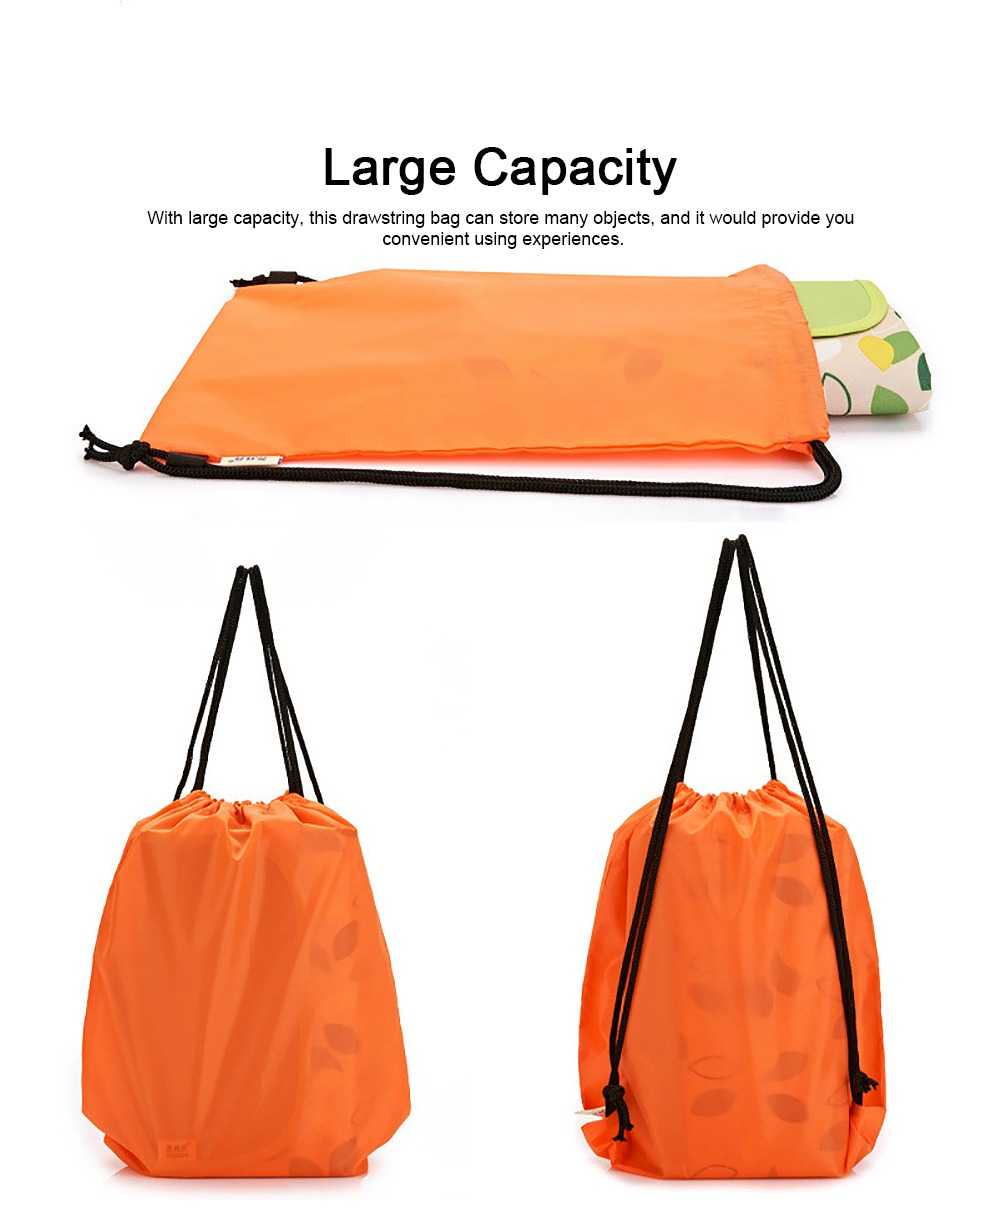 Minimalist Waterproof Moisture-proof Drawstring Shoulders Bag for Storing Picnic Mat Daily Objects Outdoors Accessories 3